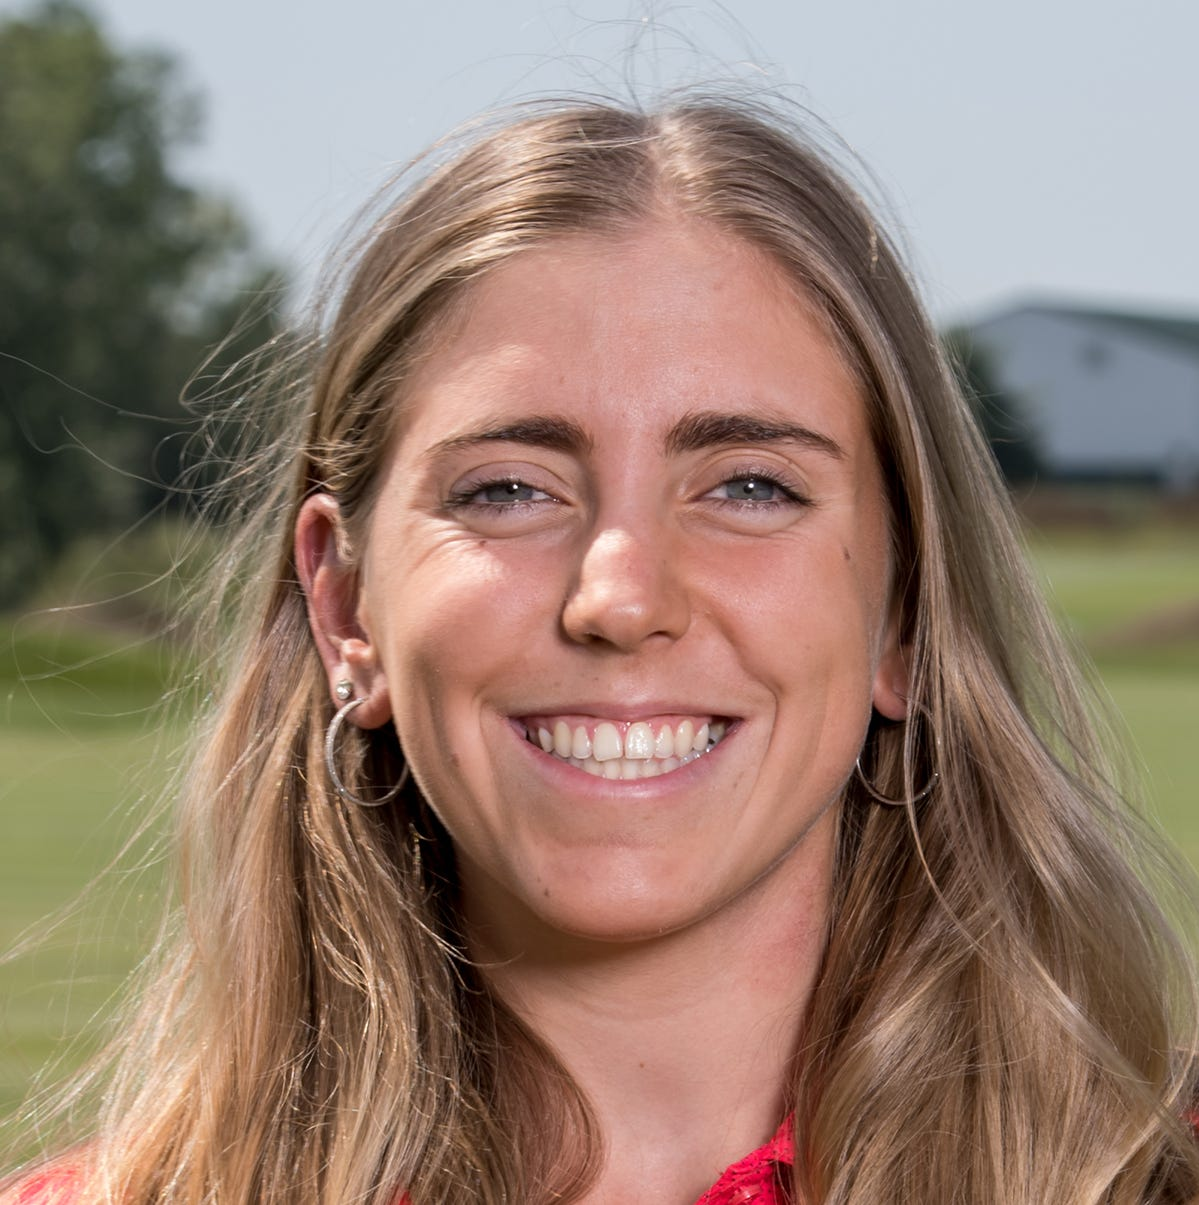 How Iowa State plans to honor slain Cyclones golfer Celia Barquin Arozamena